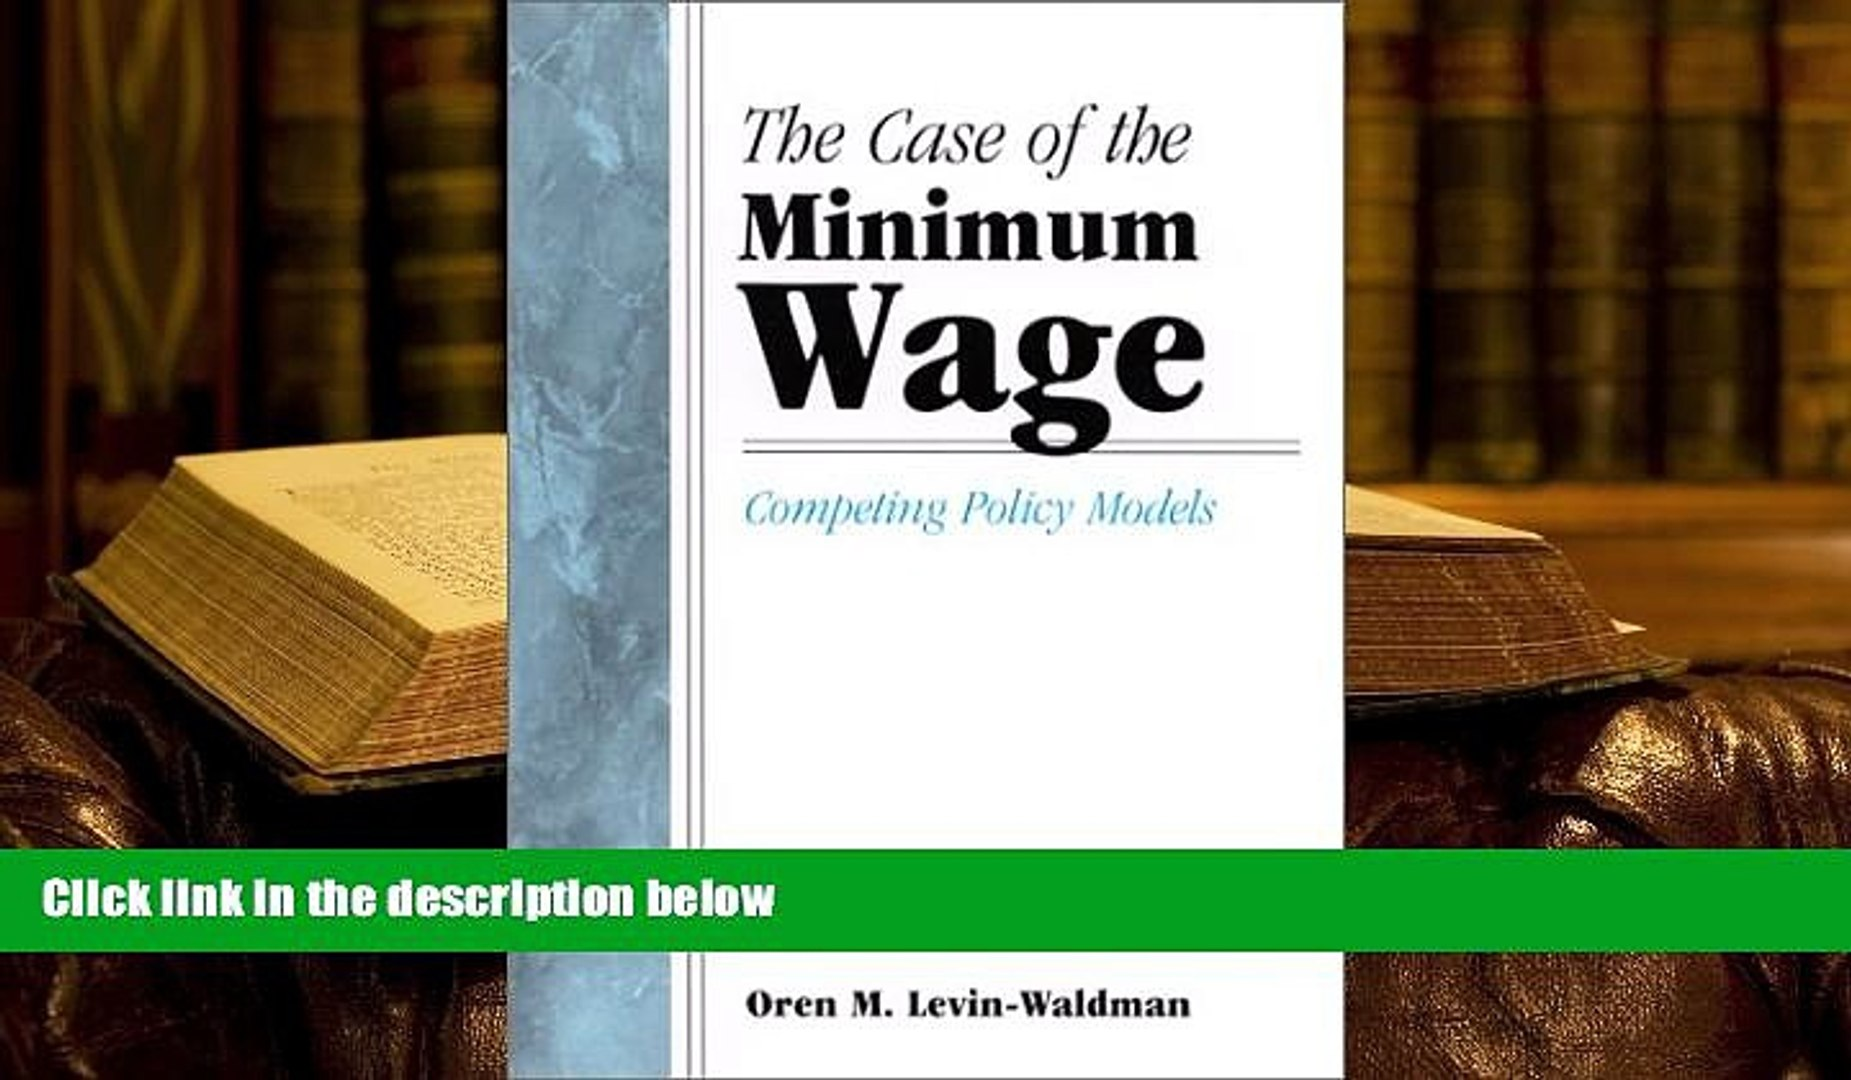 PDF [DOWNLOAD] Case of the Minimum Wage the: Competing Policy Models (Suny Series, Public Policy)